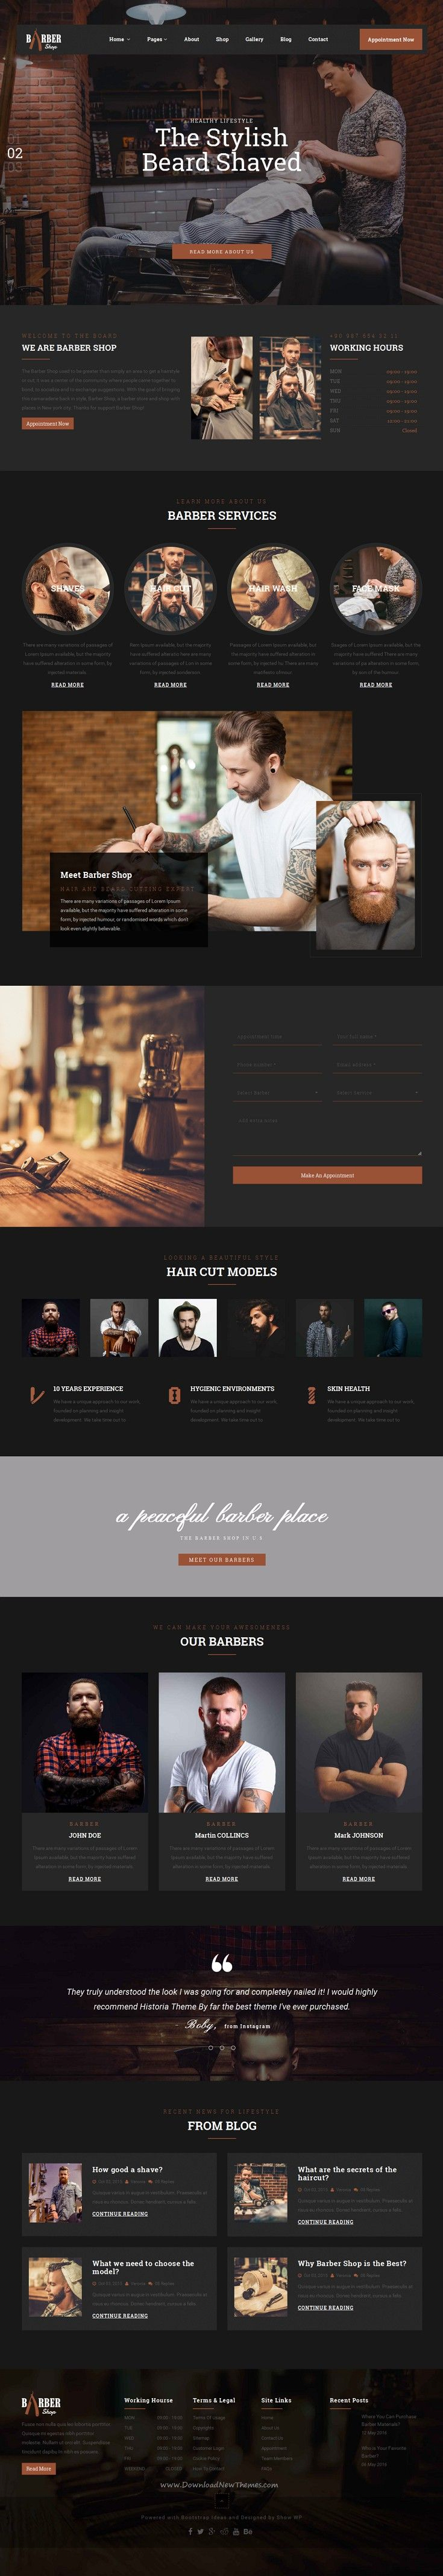 The Barber Shop is a Bootstrap HTML #template design for professional barber sites, hair #salon or #barber shop websites. Download Now!